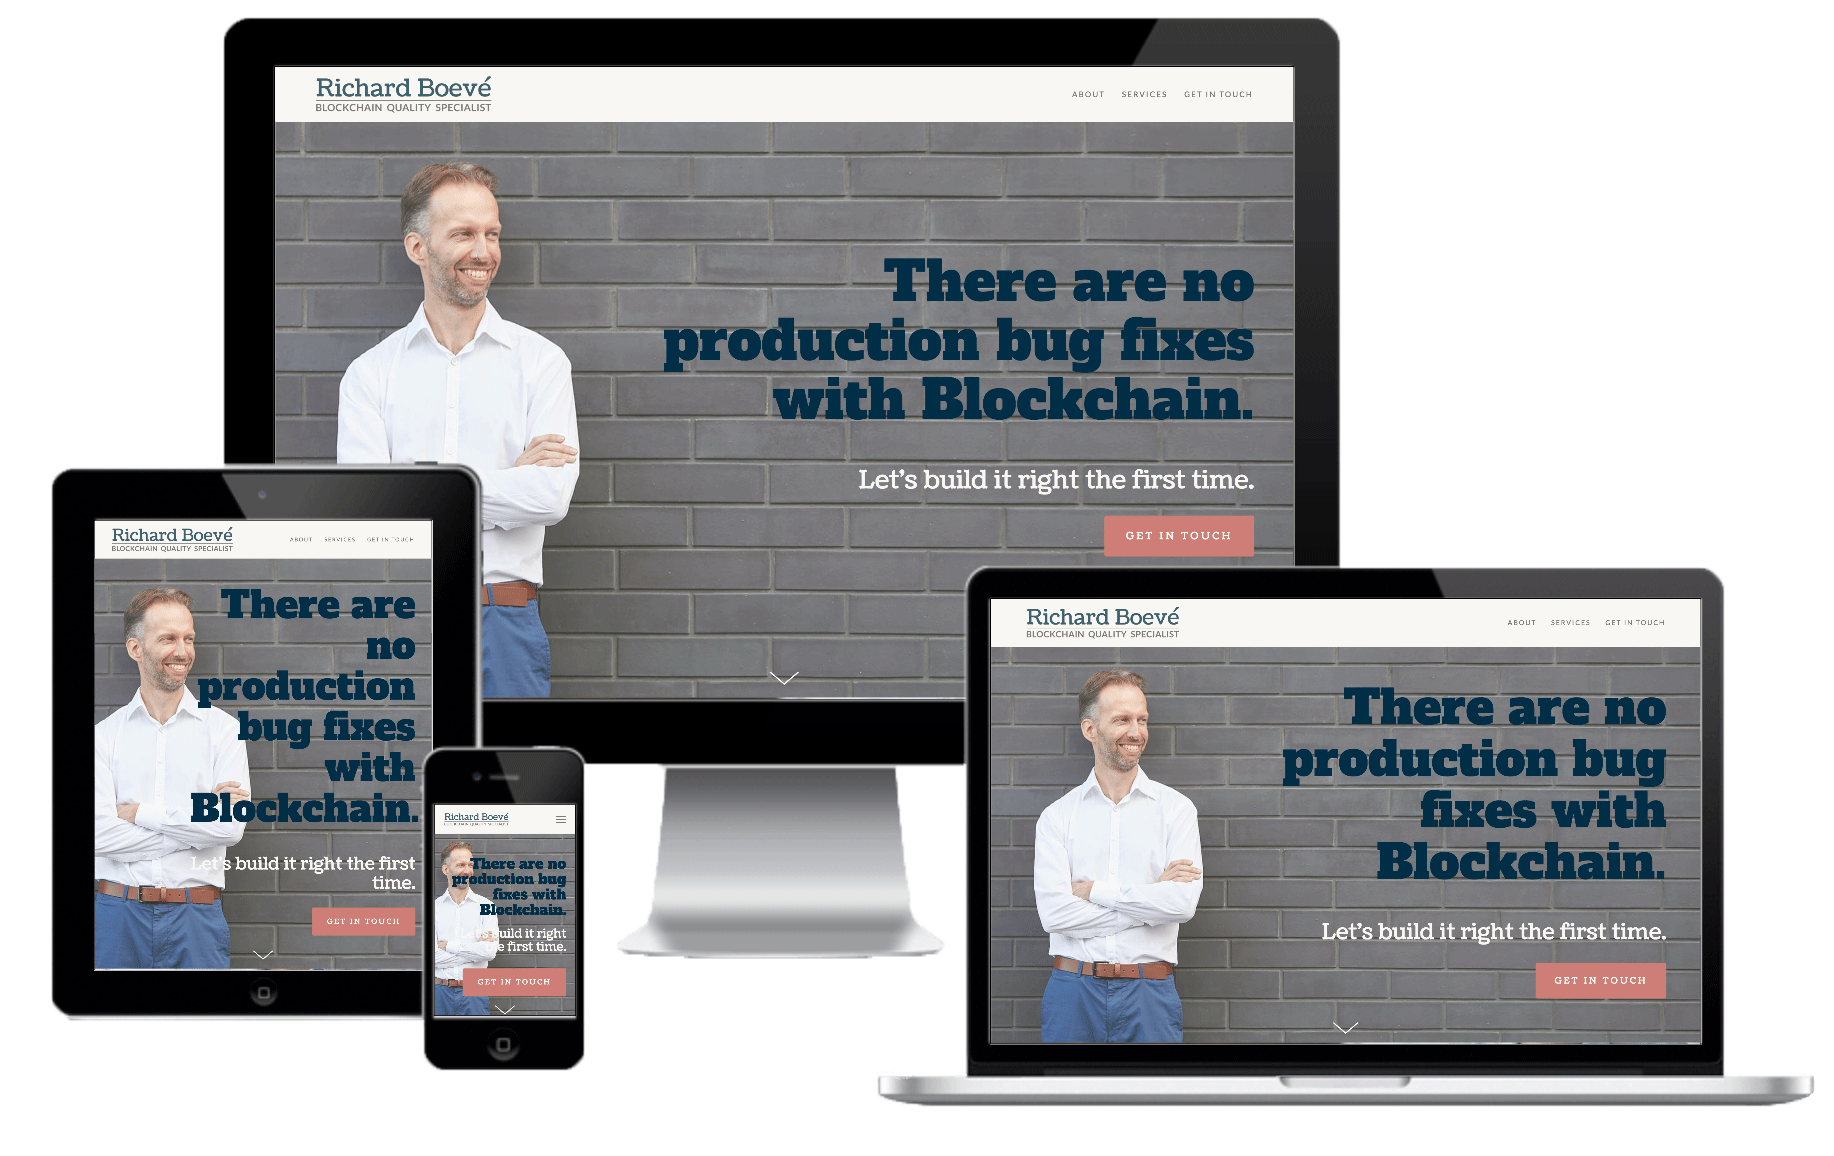 Branded Website - The final product we created was a fully-responsive personal website, which showcases Richard's strengths and approach to creating blockchain testing solutions in a way that immediately communicates his unique brand and value proposition to any visitor.  Check it out and get to know Richard Boevé here.